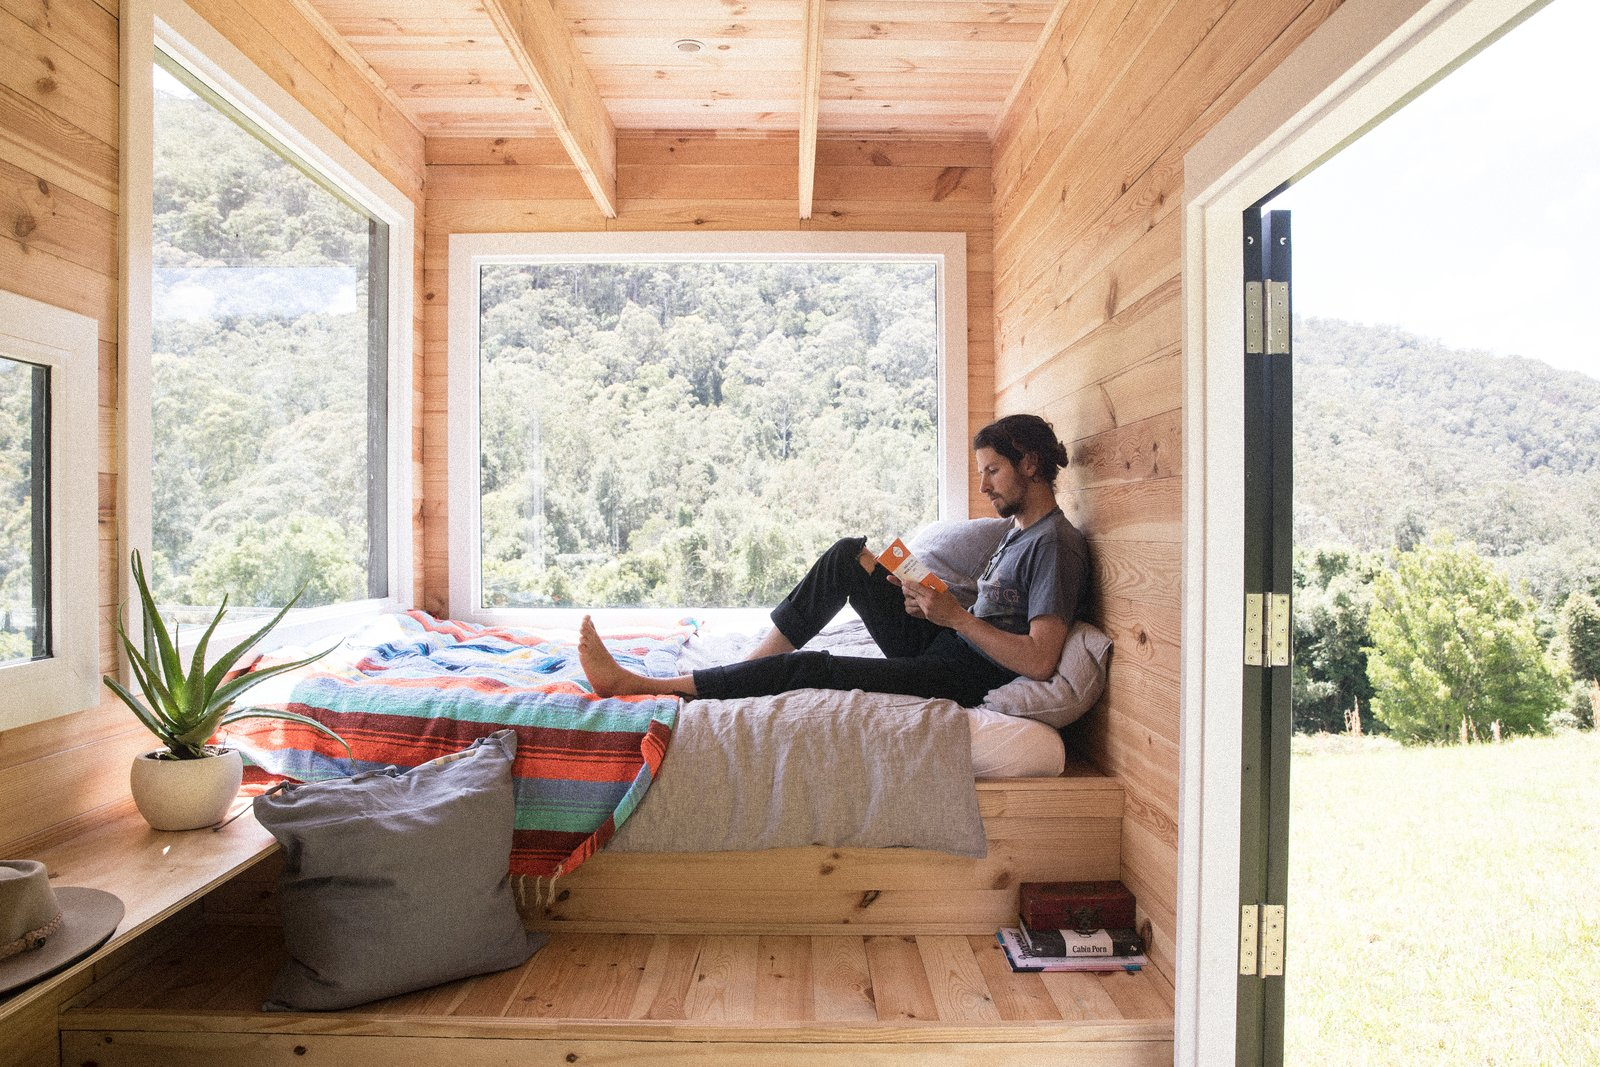 Unyoked offers four tiny houses in Sydney, and two in Melbourne that are both set in thoughtfully chosen sites of natural beauty.